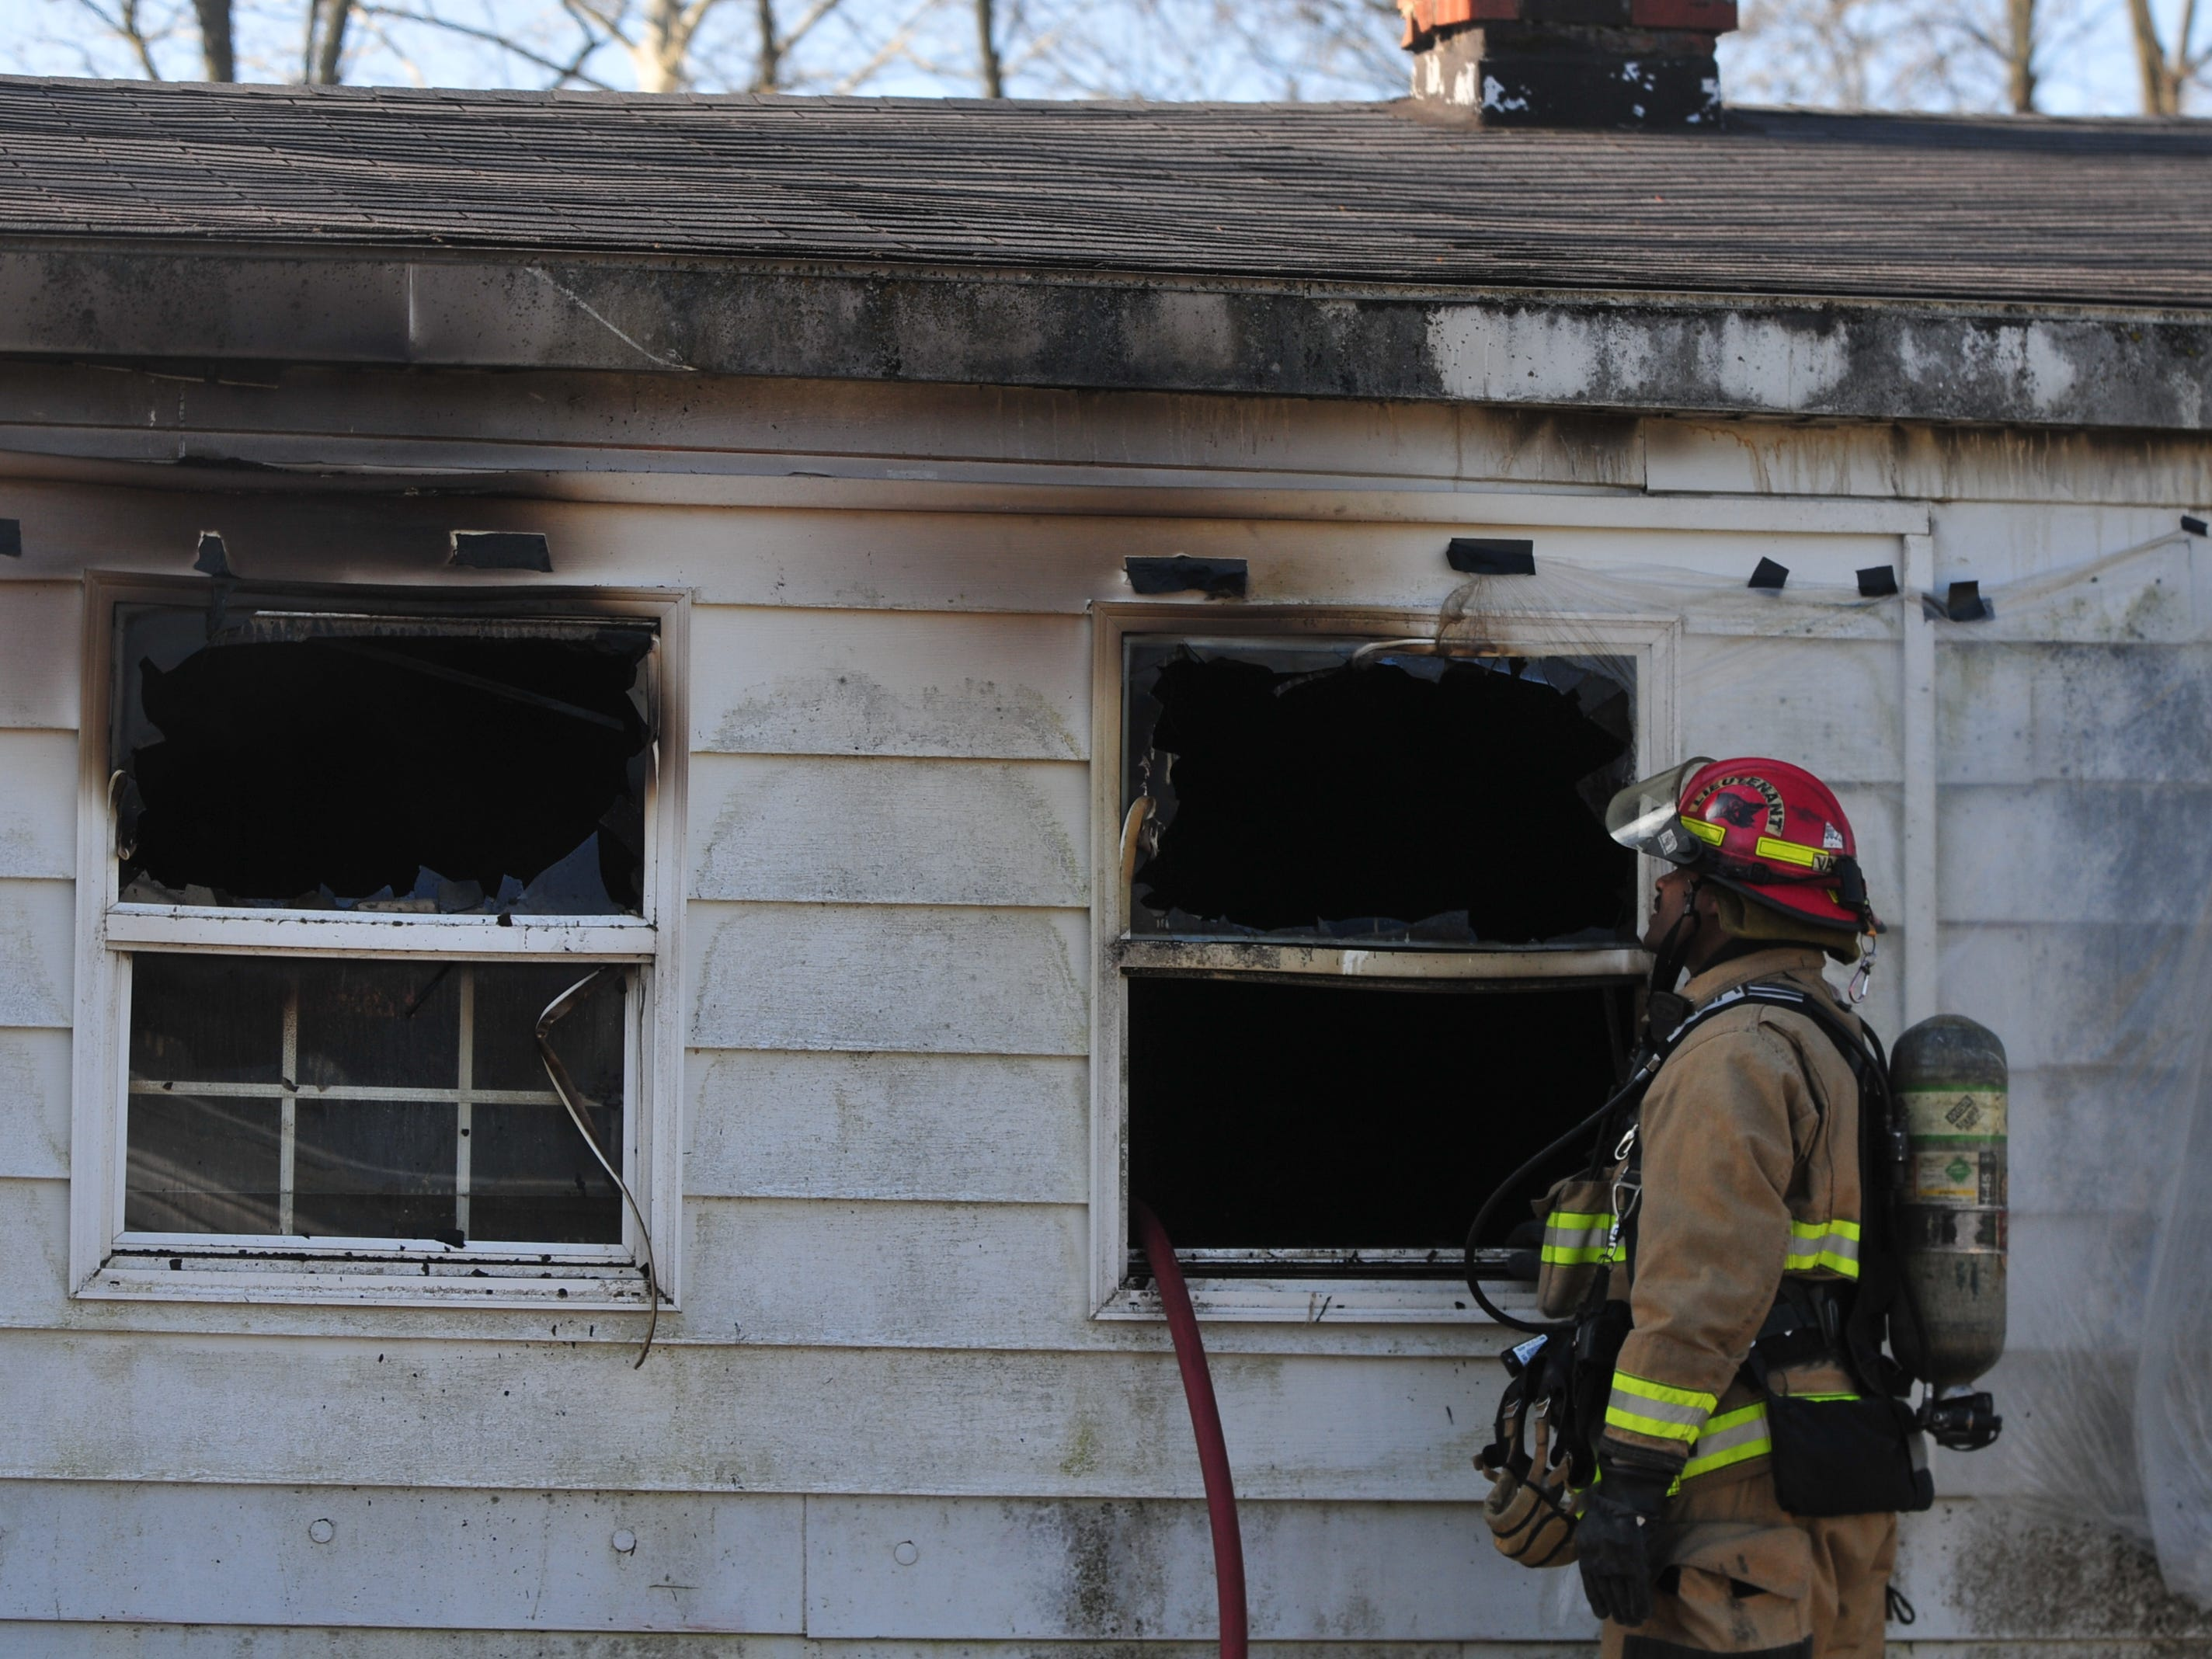 Richmond Fire Department personnel extinguished a fire Wednesday morning at a house in the 2100 block of South 11th Street.